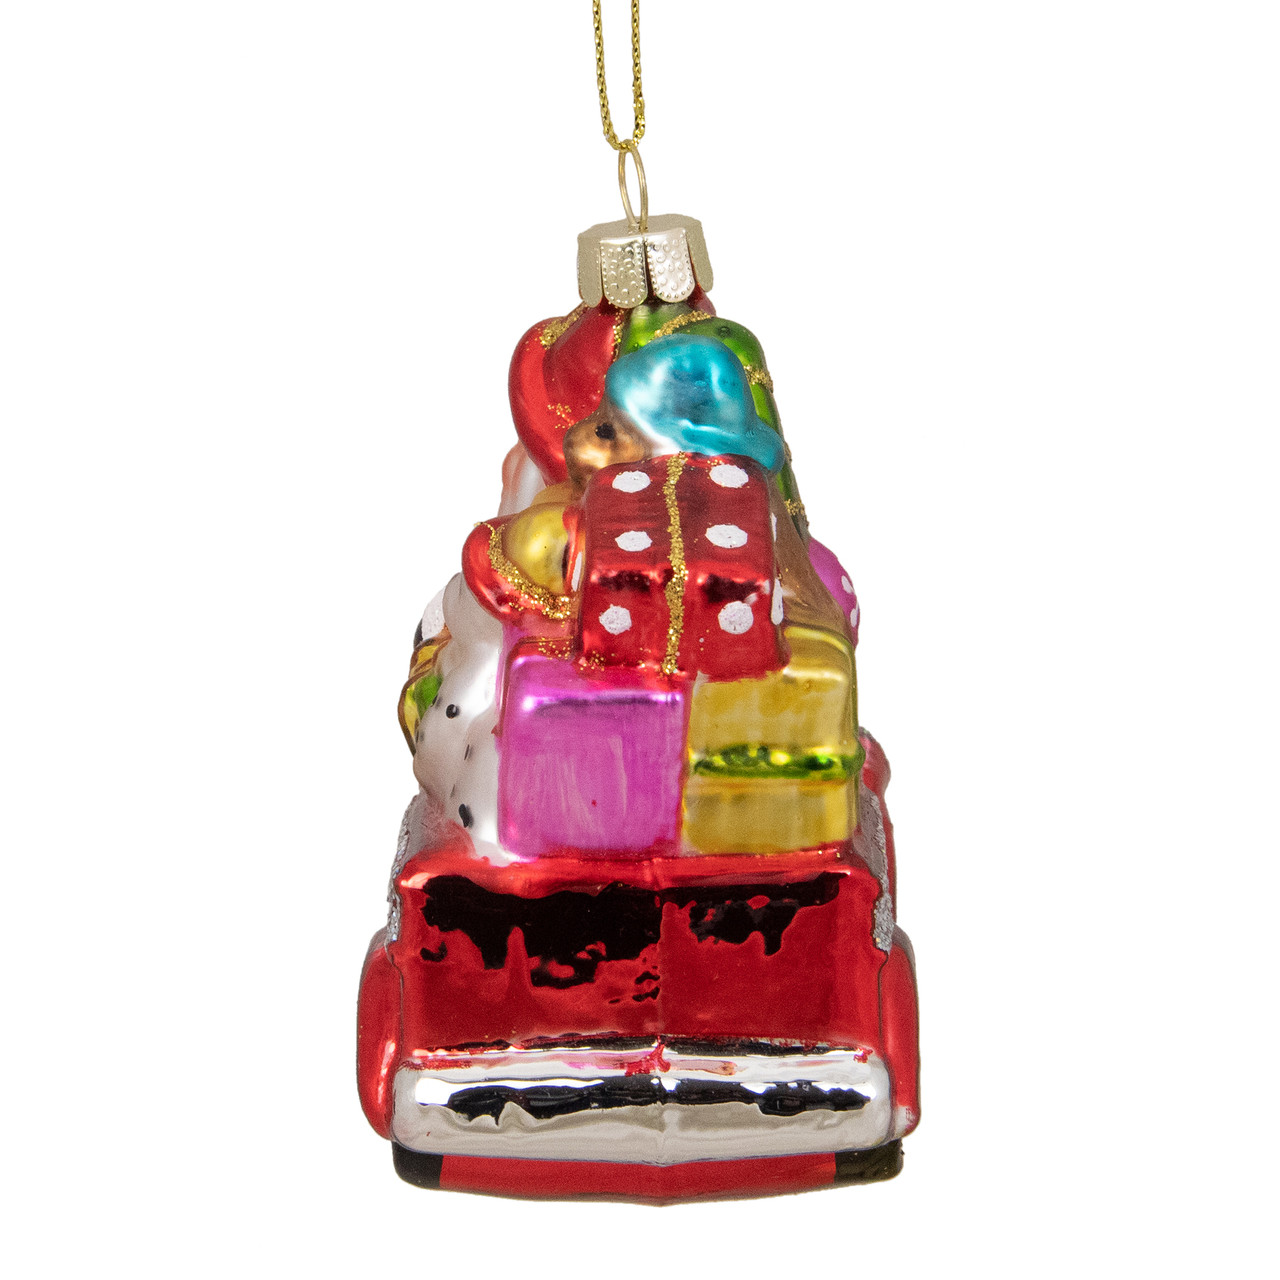 35 glass santa in fire truck decorative christmas ornament 31752658 - Christmas Truck Decor